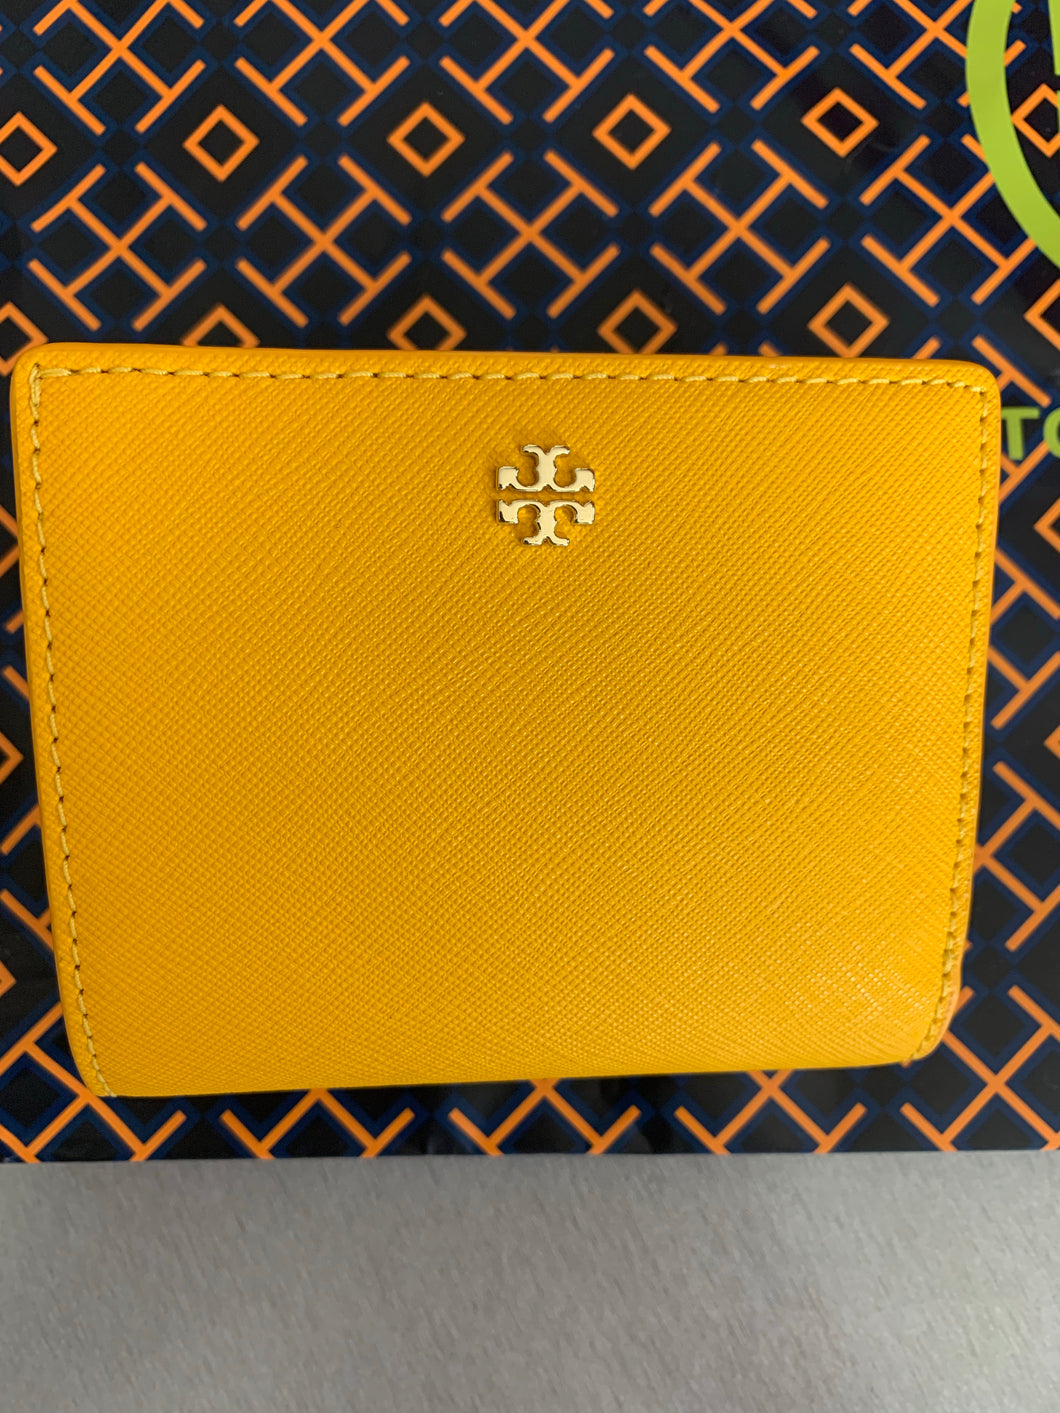 Tory Burch NEW WITH TAGS ROBINSON MINI WALLET - YELLOW